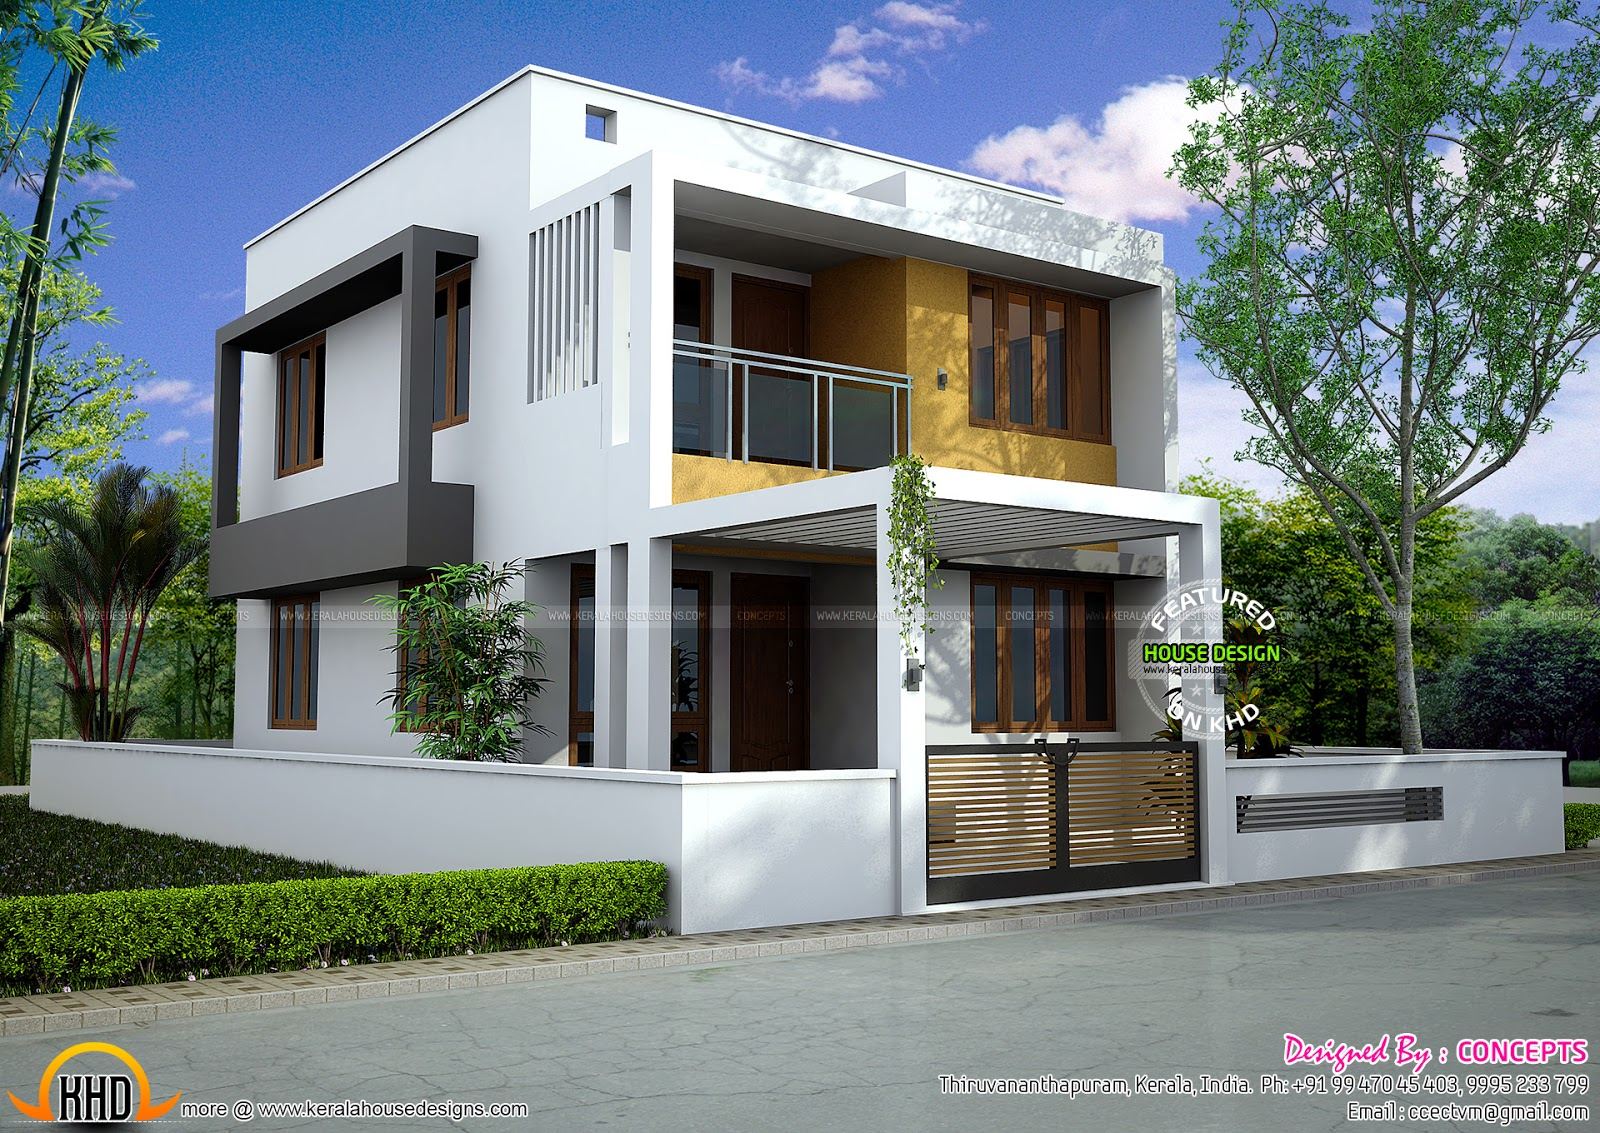 Floor plan of modern 3 bedroom house kerala home design for Modern house plans and designs